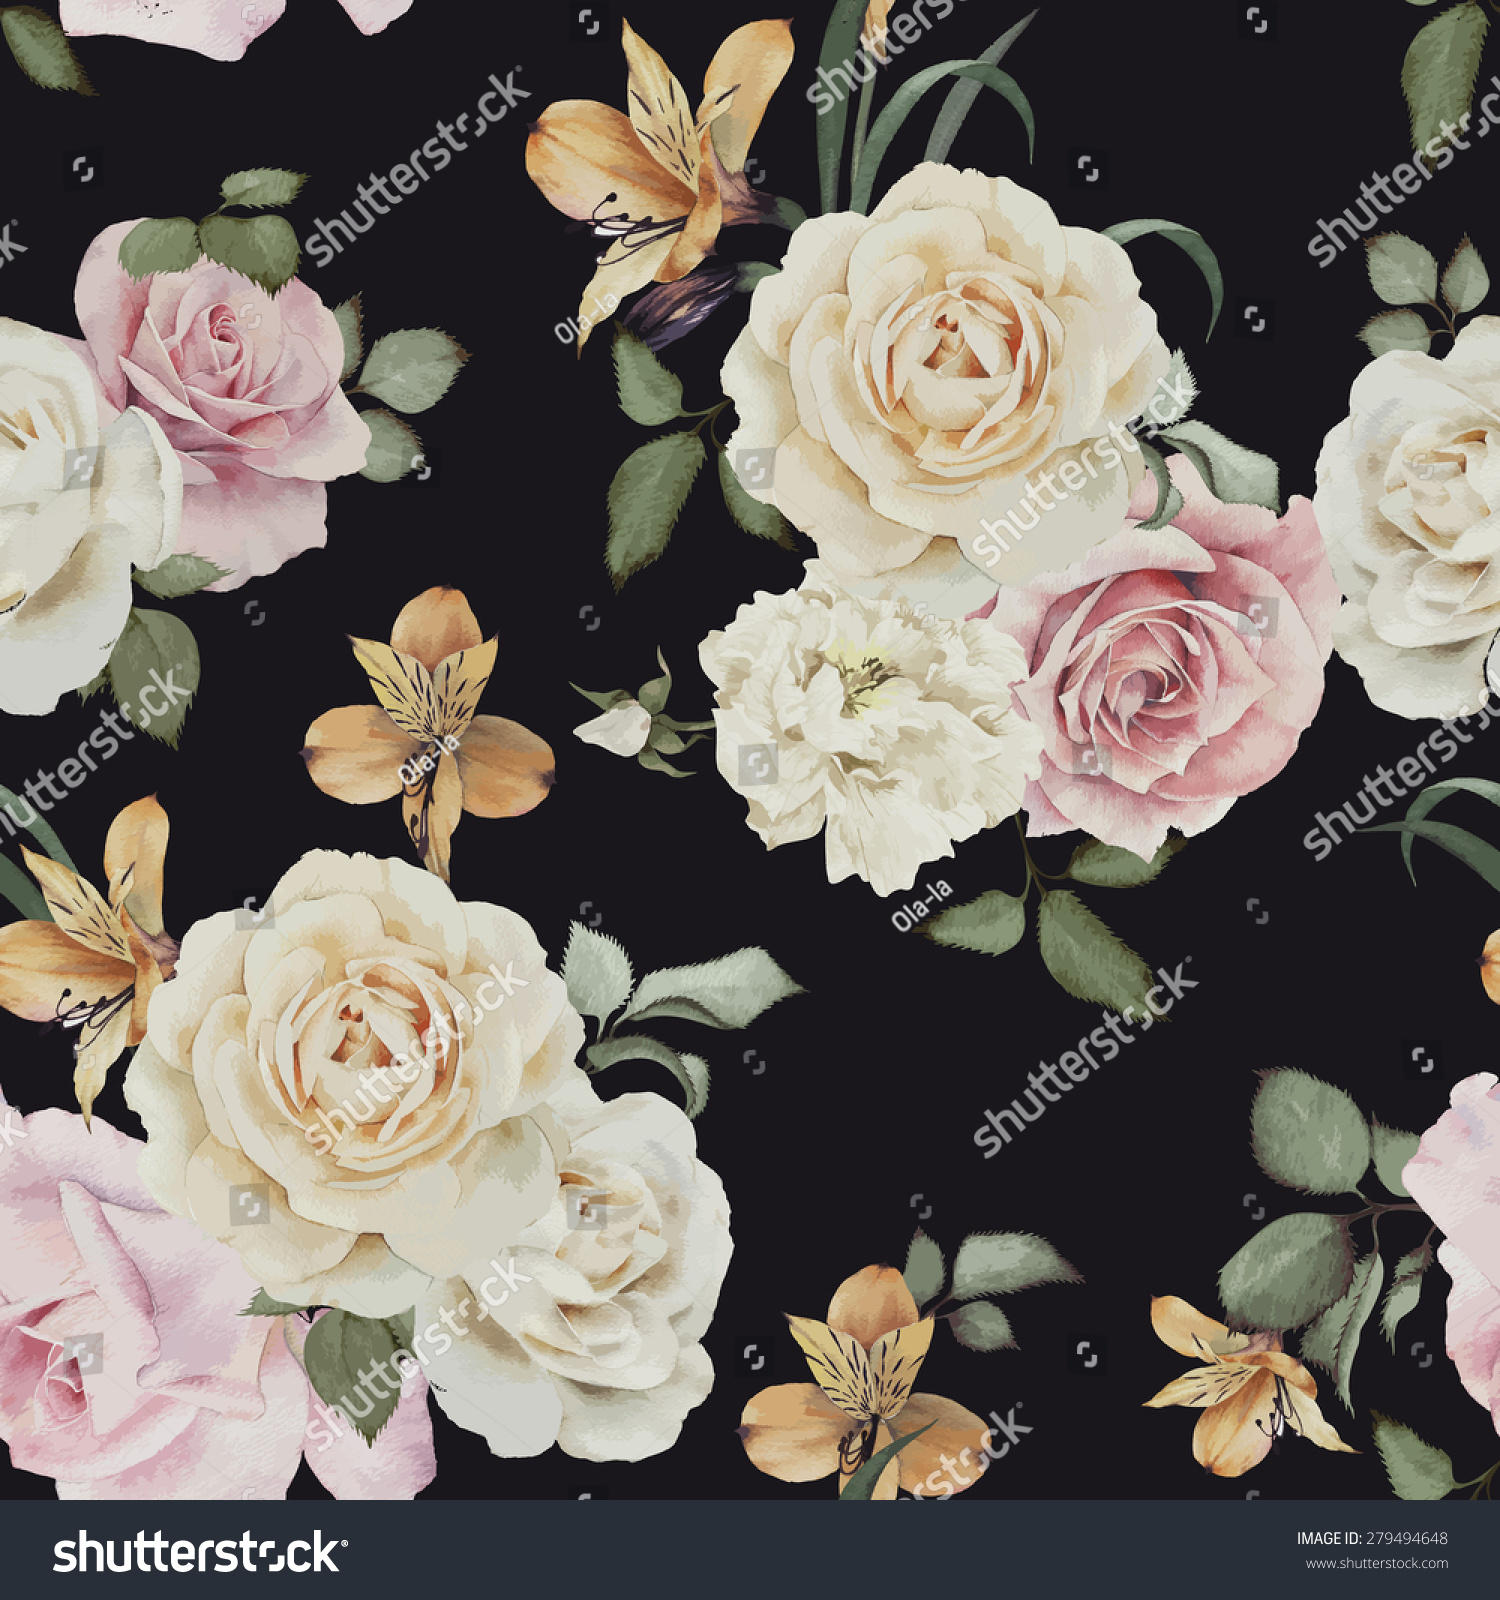 Seamless floral pattern with roses watercolor Vector illustration